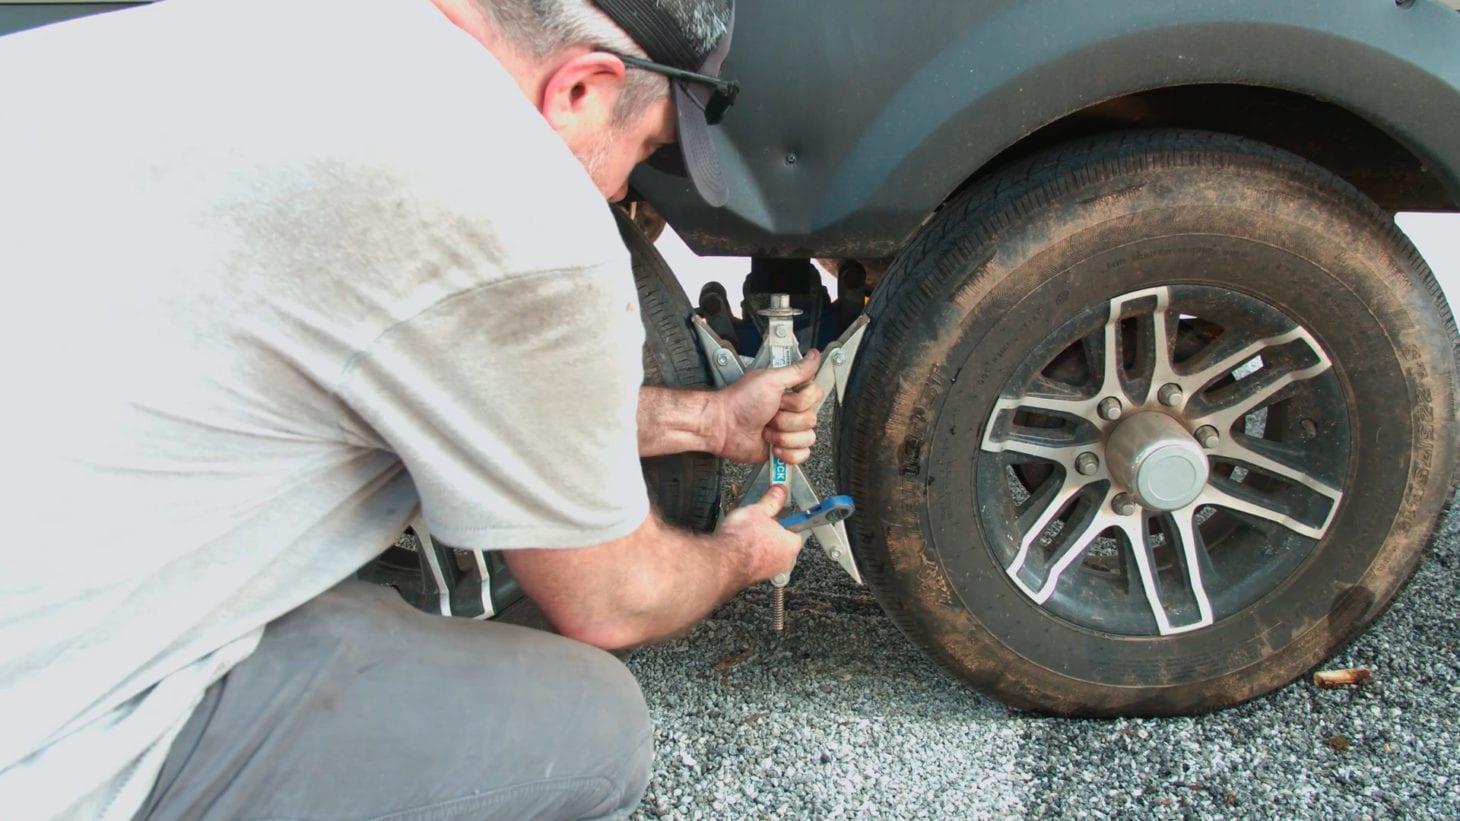 Person using tire chocks to change a flat tire